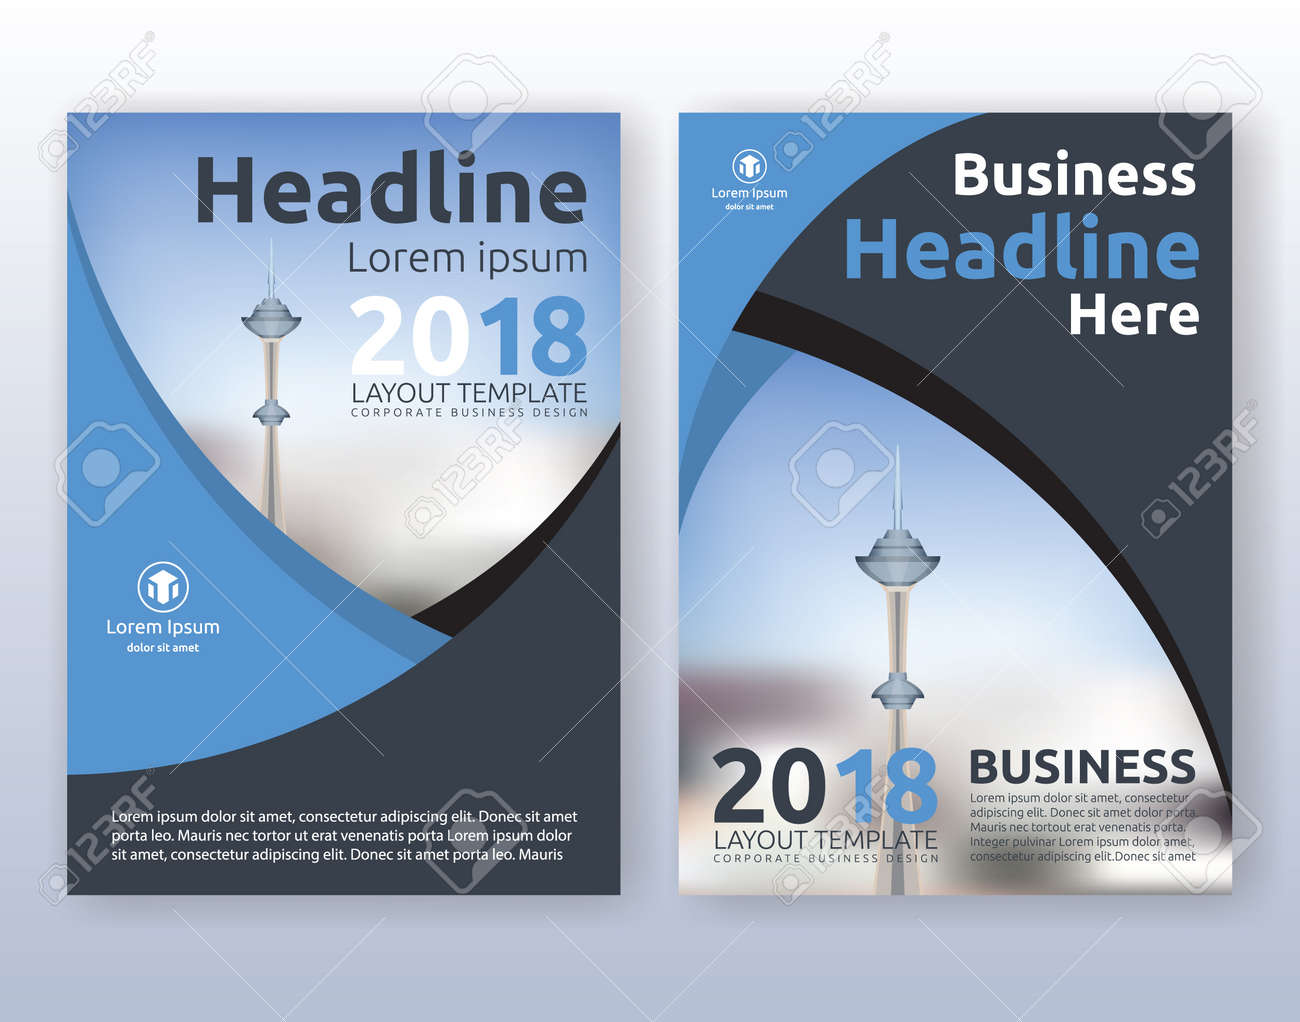 Multipurpose corporate business flyer layout design. Suitable for flyer, brochure, book cover and annual report. blue and black color scheme in A4 size layout template background with bleeds. - 67811514